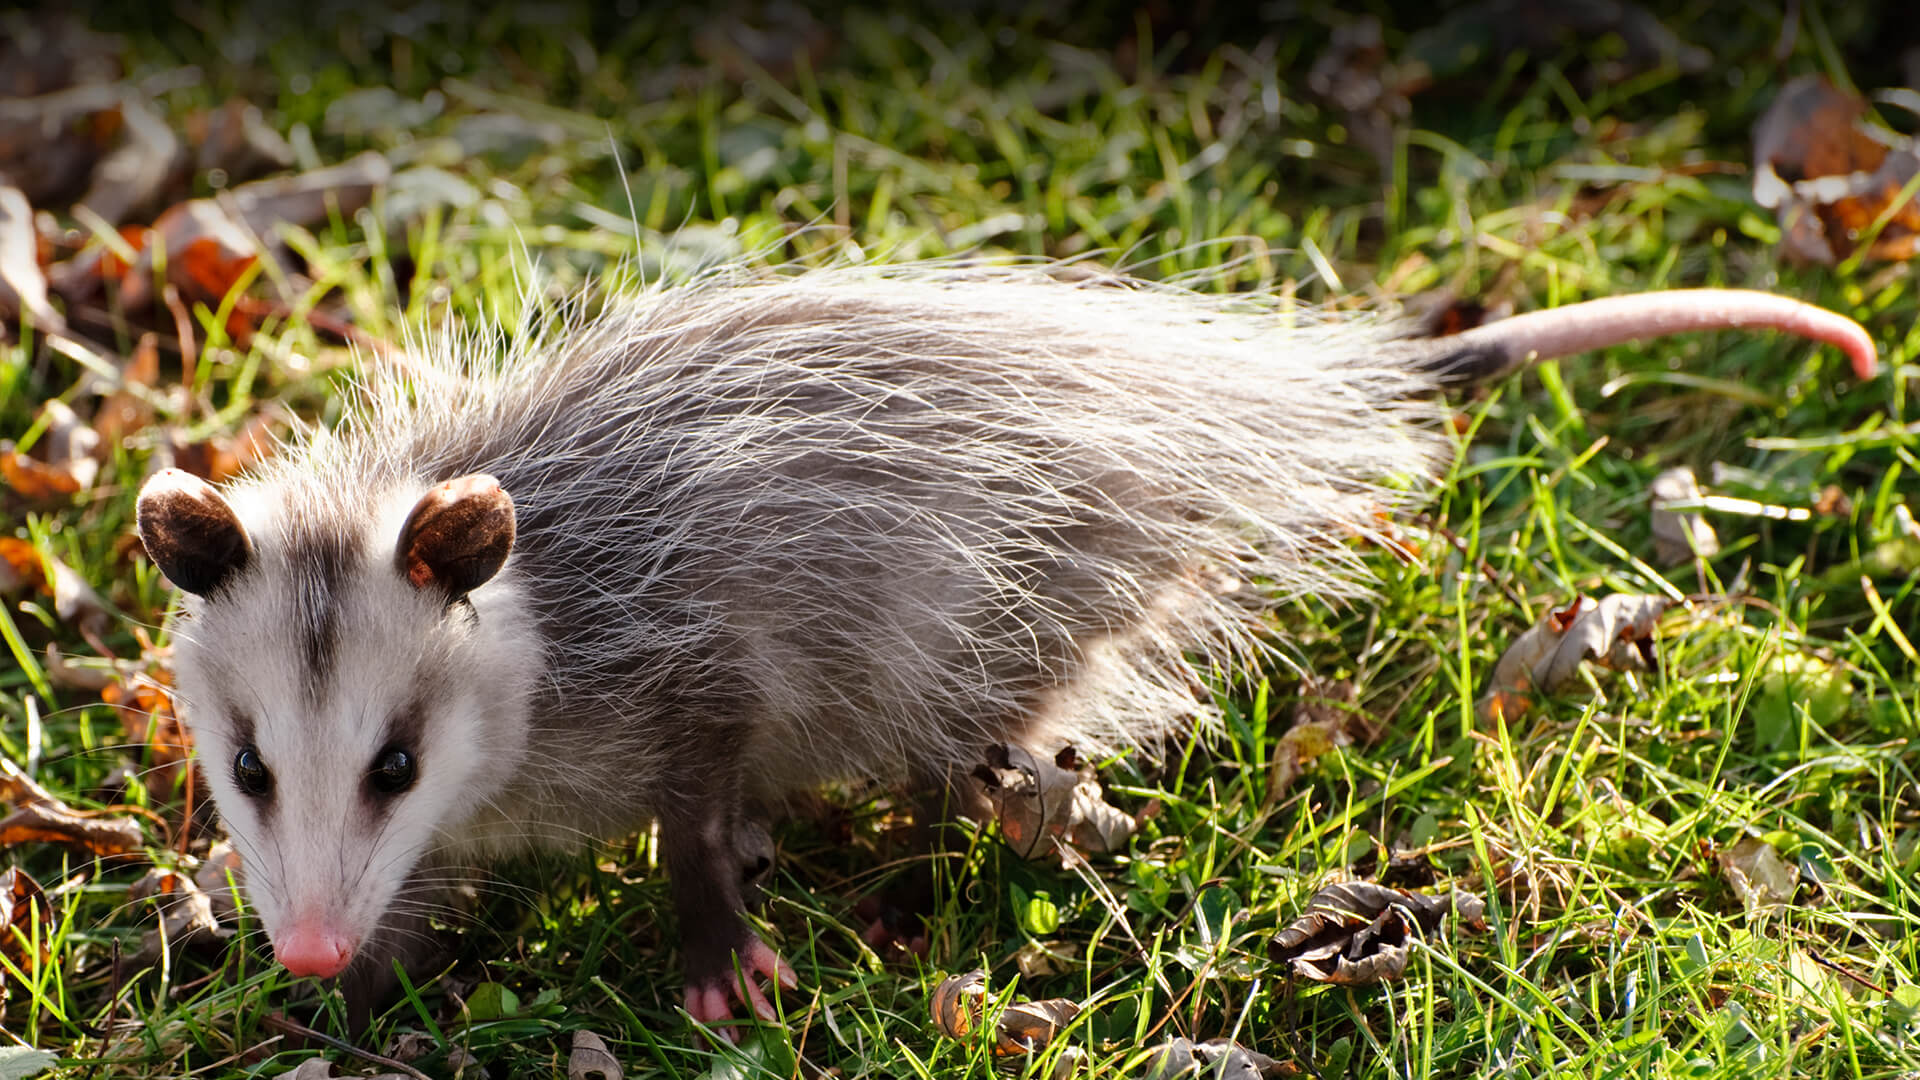 Opossum | San Diego Zoo Animals & Plants